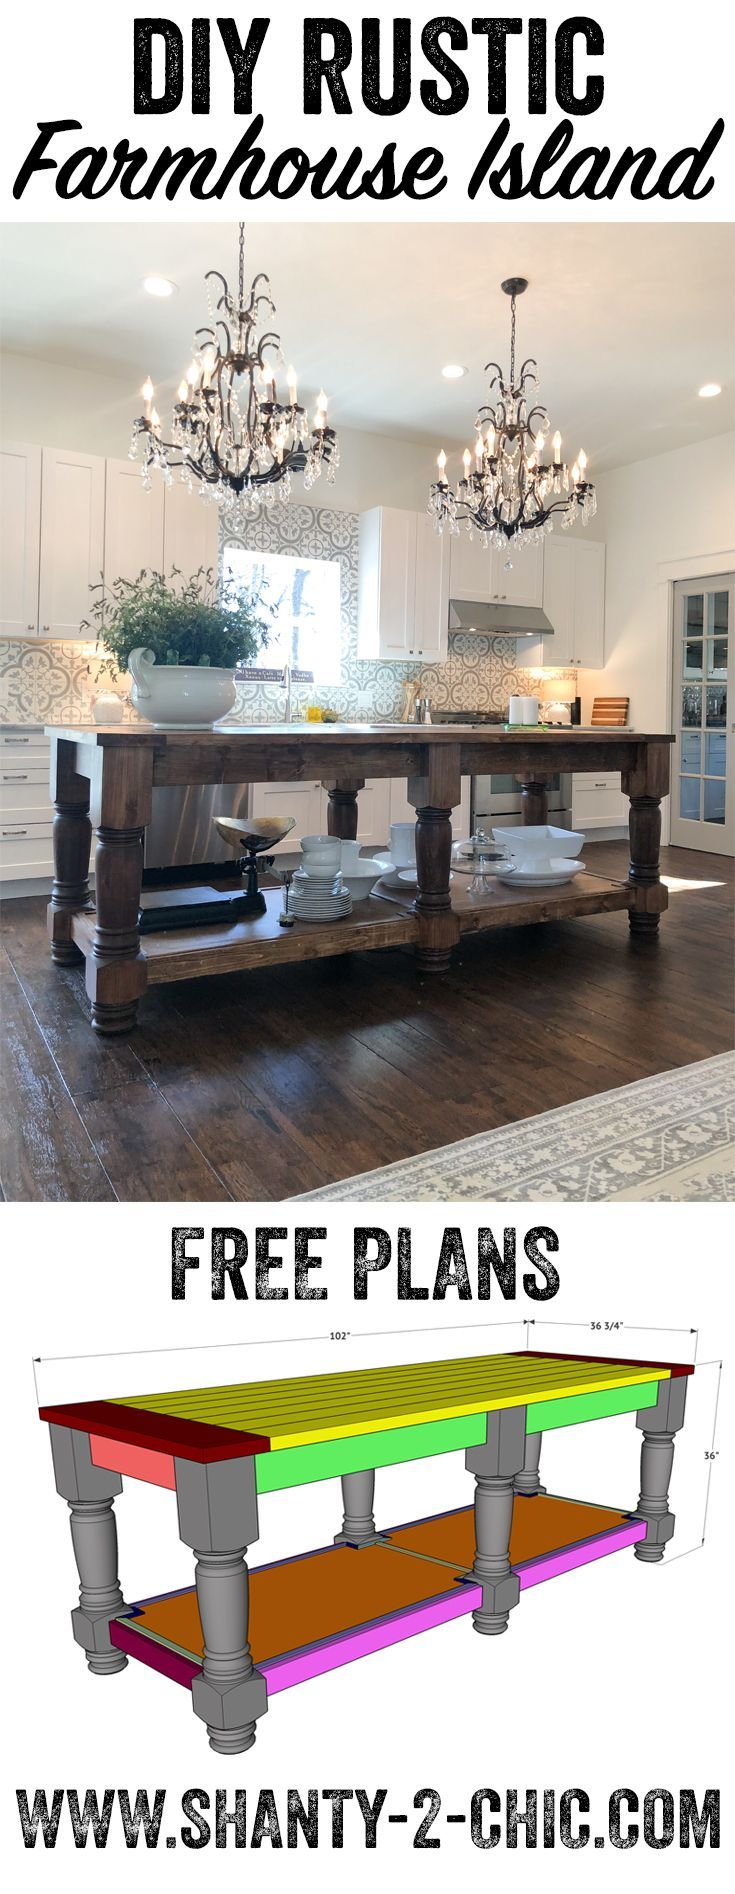 Free plans and how-to video to build this beautiful 8.5' farmhouse style kitchen island! This island can be modified to fit your space! Get the how-to at www.shanty-2-chic.com via @shanty2chic #woodworkingprojects